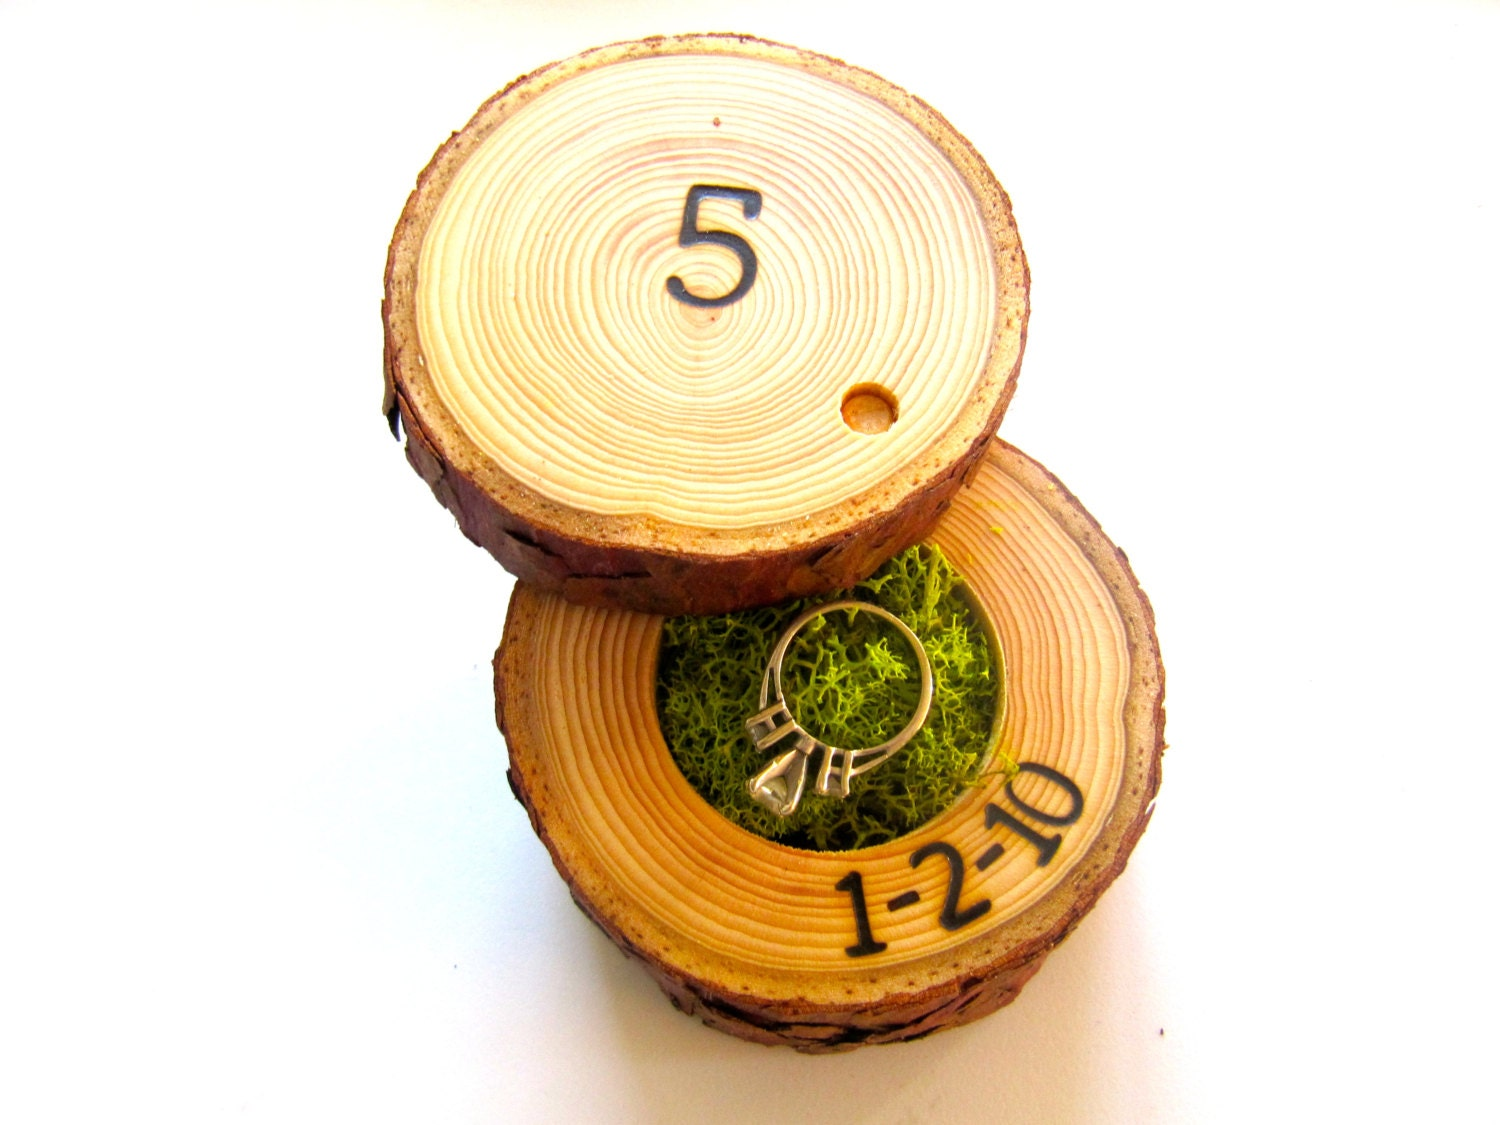 5th Wedding Anniversary Wooden Gifts: 5th Anniversary Gift Wood Anniversary Ring Box